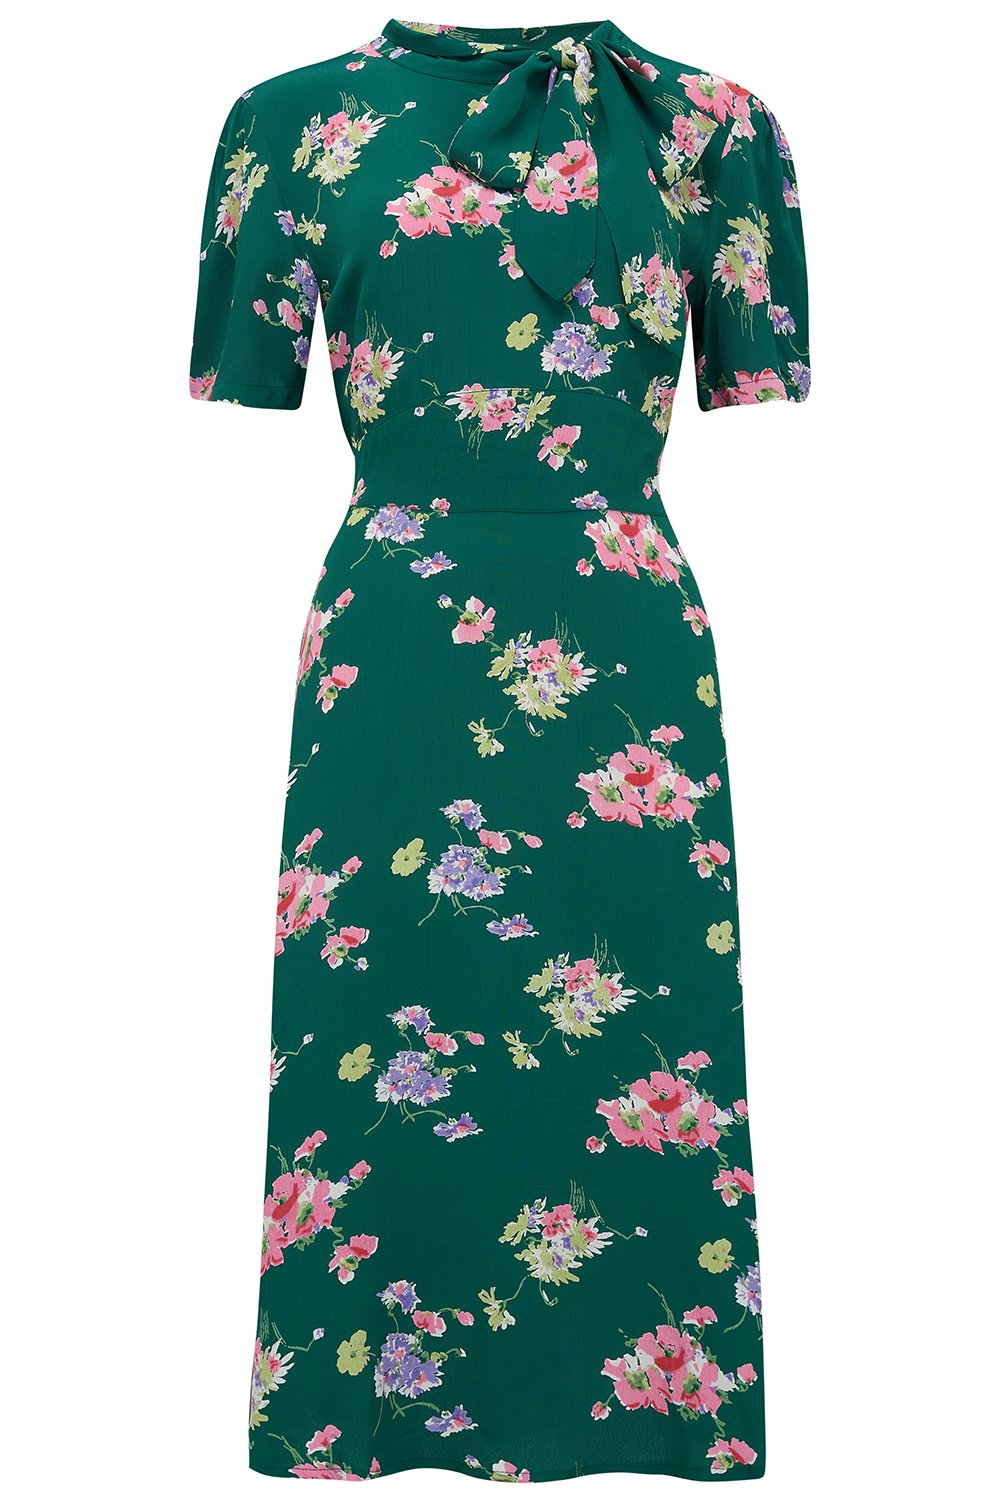 Vintage Style Dresses | Vintage Inspired Dresses Kathy Dress in Green Mayflower A Classic 1940s Inspired True Vintage Style £79.01 AT vintagedancer.com